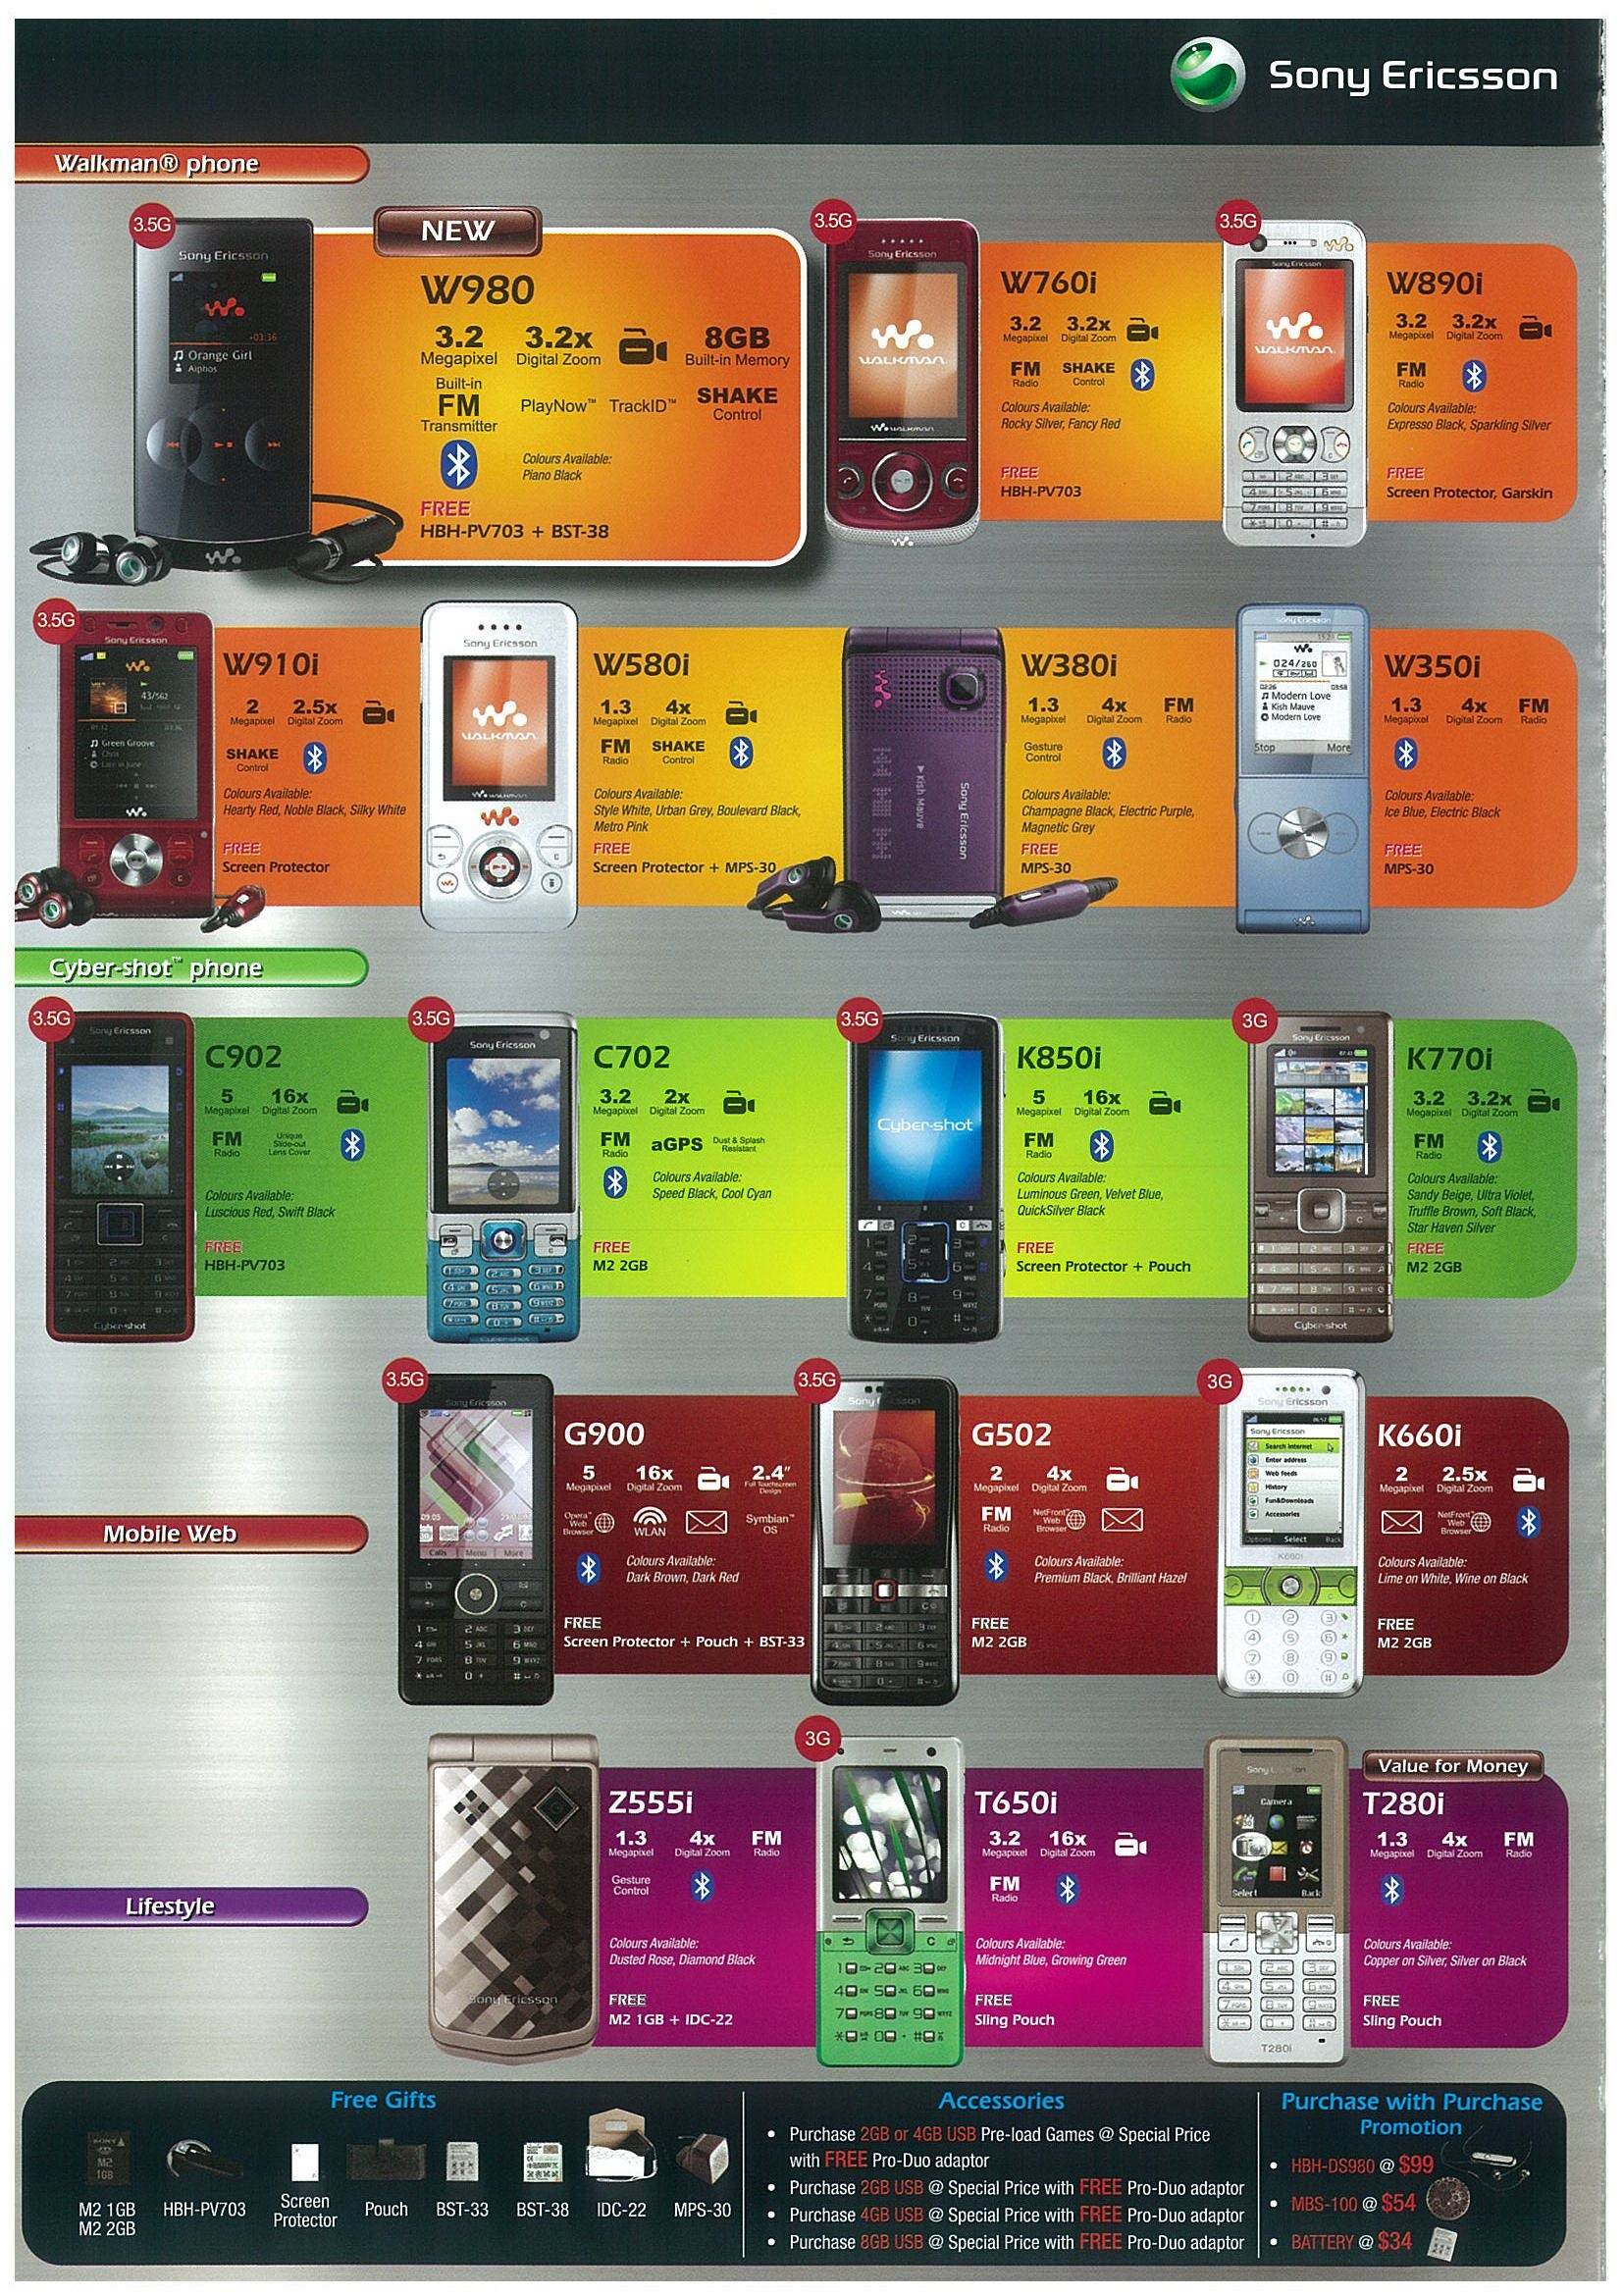 Comex 2008 price list image brochure of Sony Ericsson Page 6